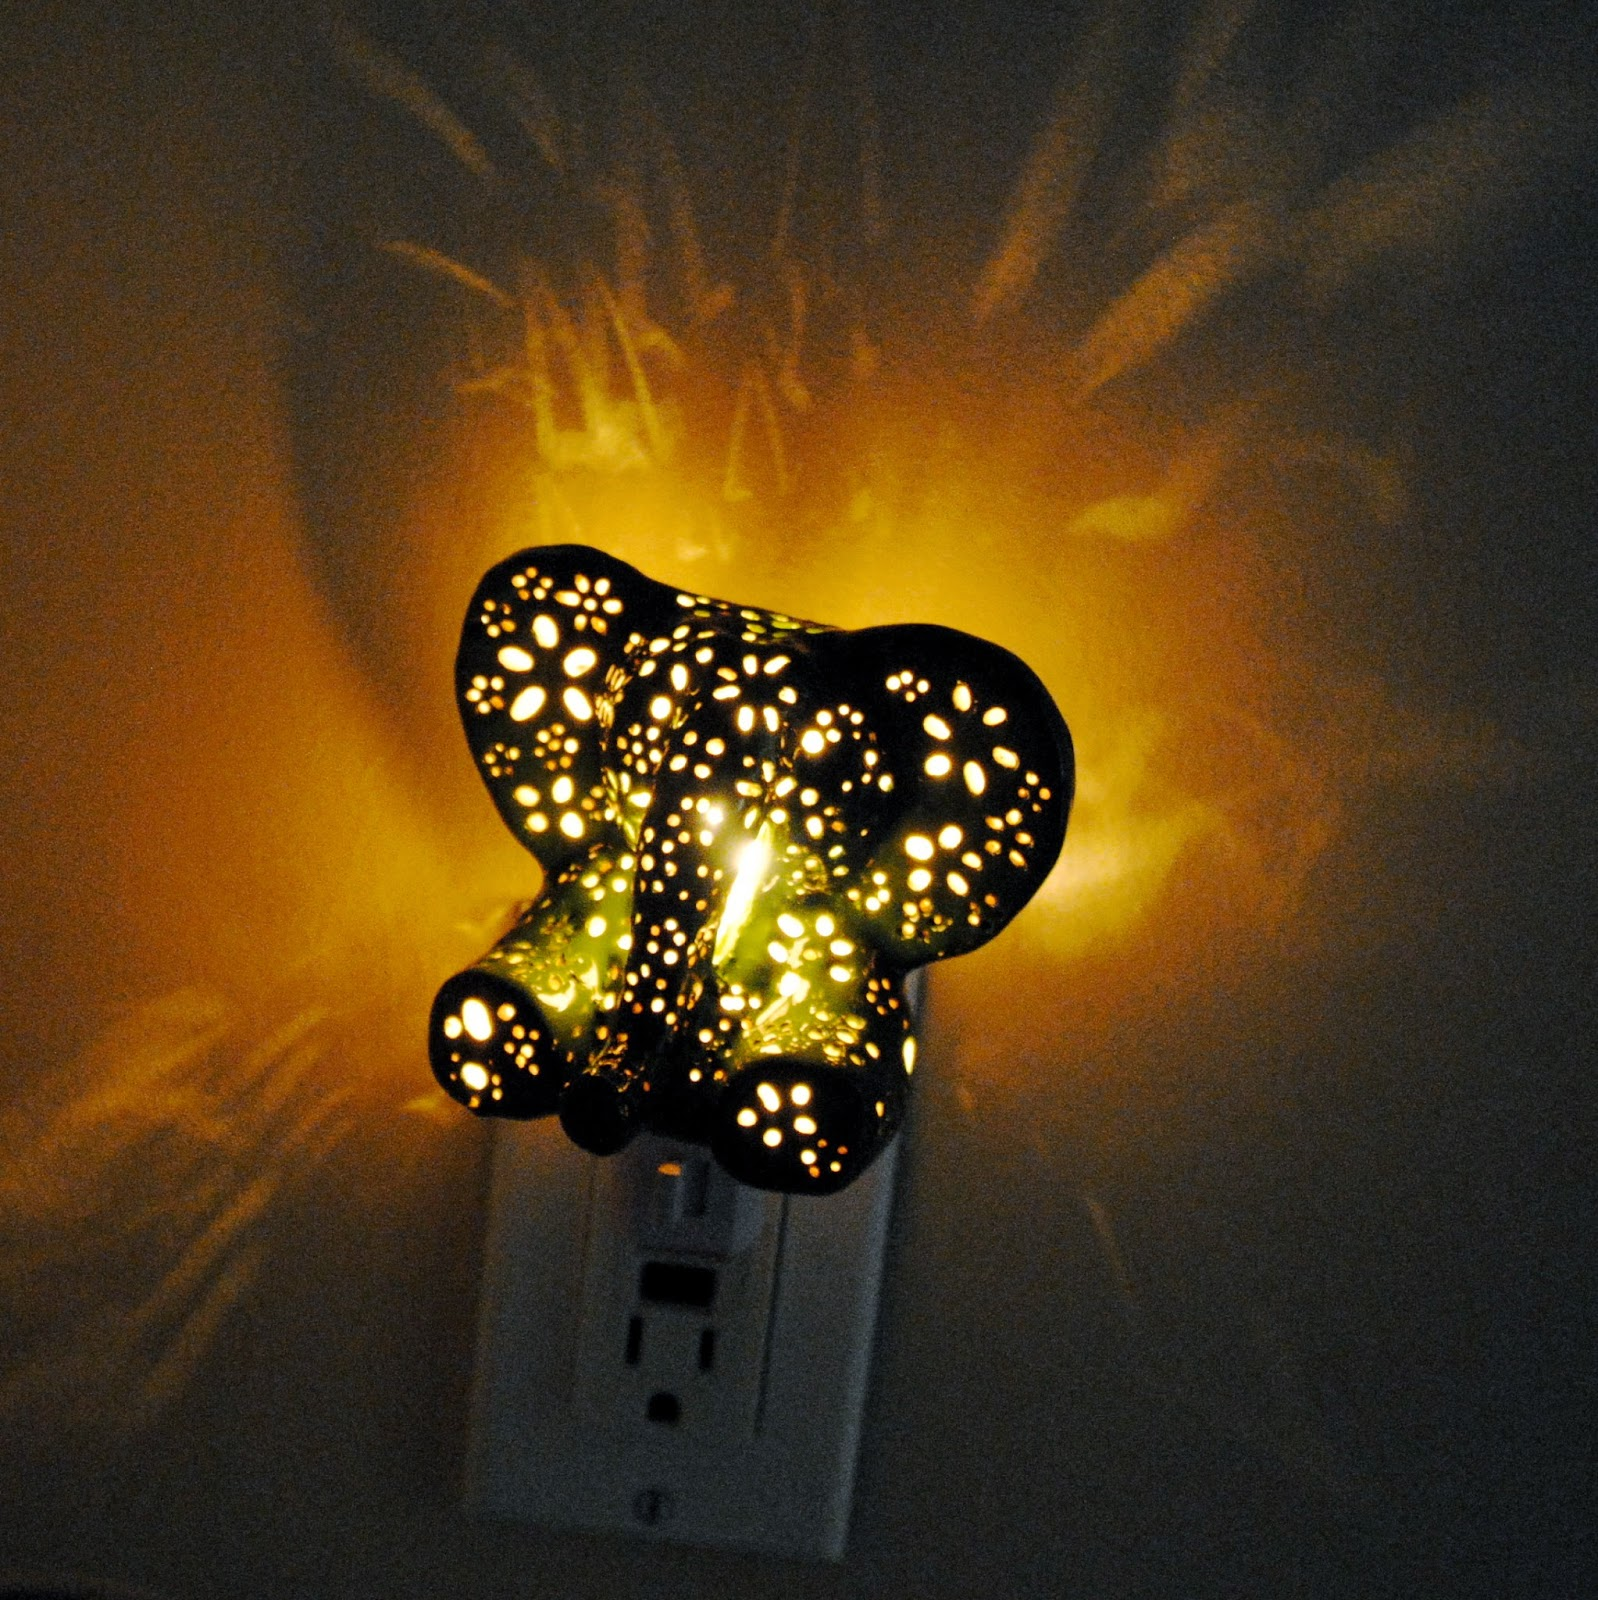 Night lights designs - This Sweet Elephant Was Just What We Needed To Brighten Up Our Night Time And Now You Can Have One Too Ashley From Lily S Lights Was Kind Enough To Offer